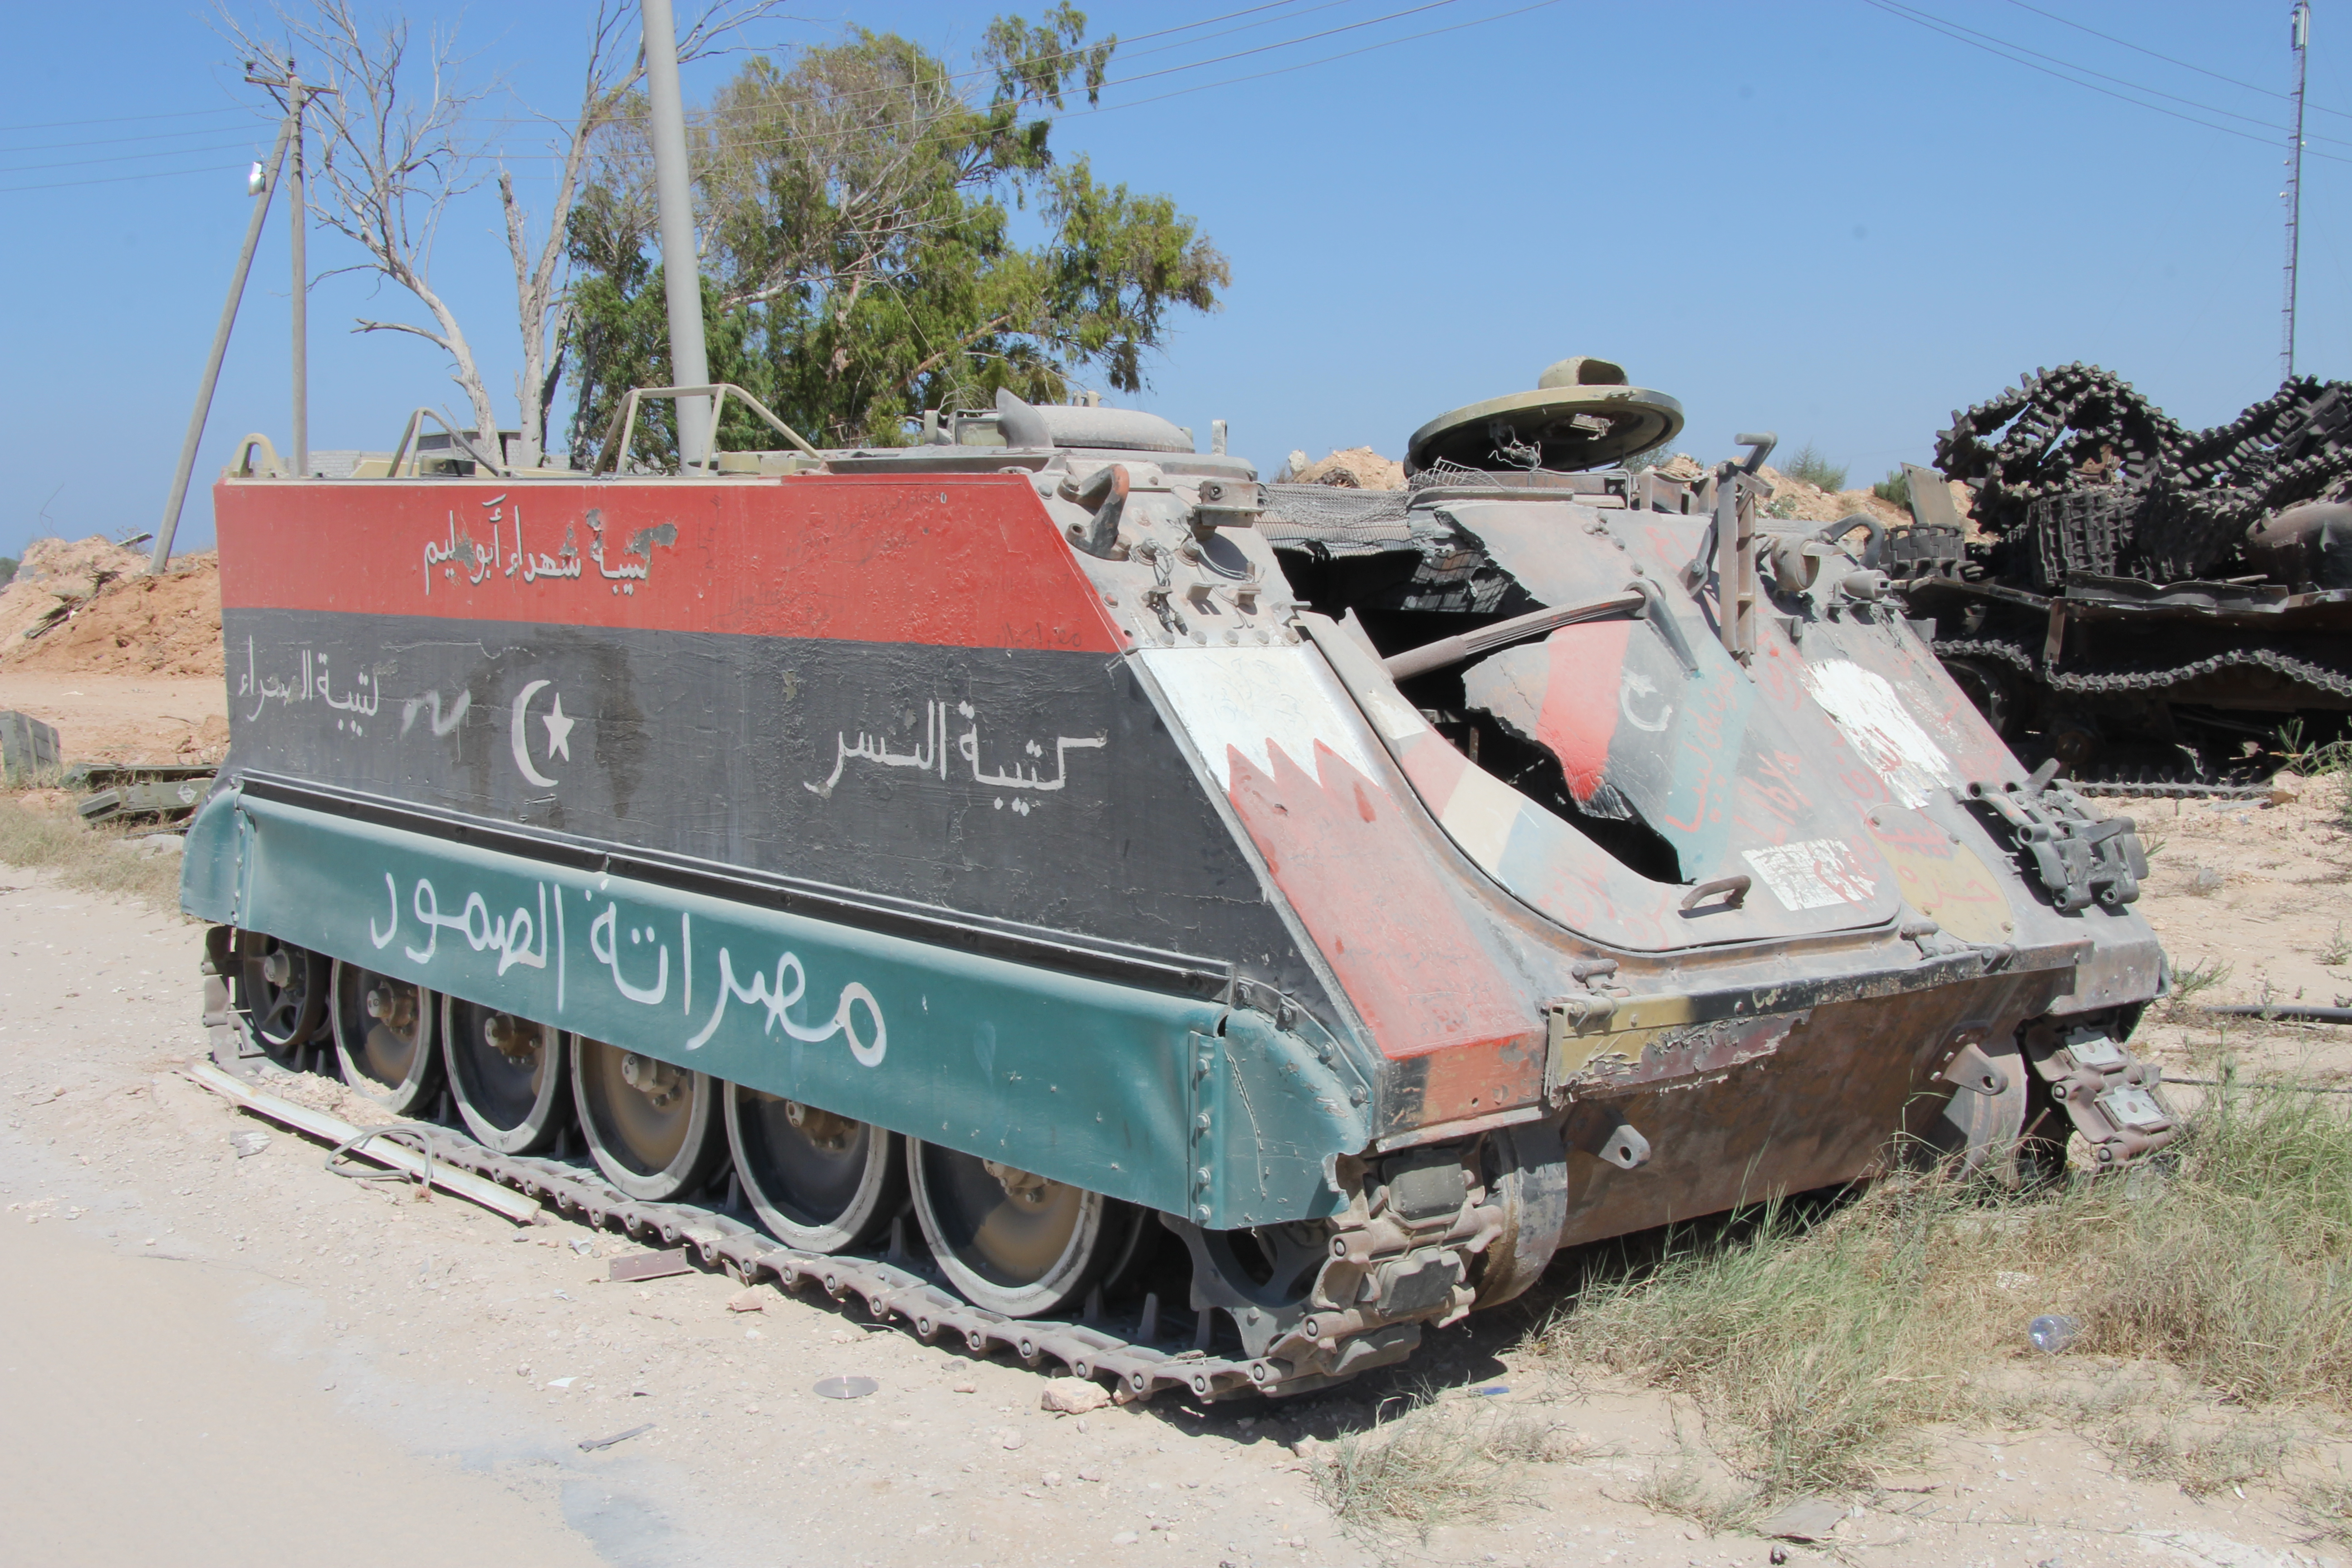 An armoured personnel carrier painted with Libyan flag colours